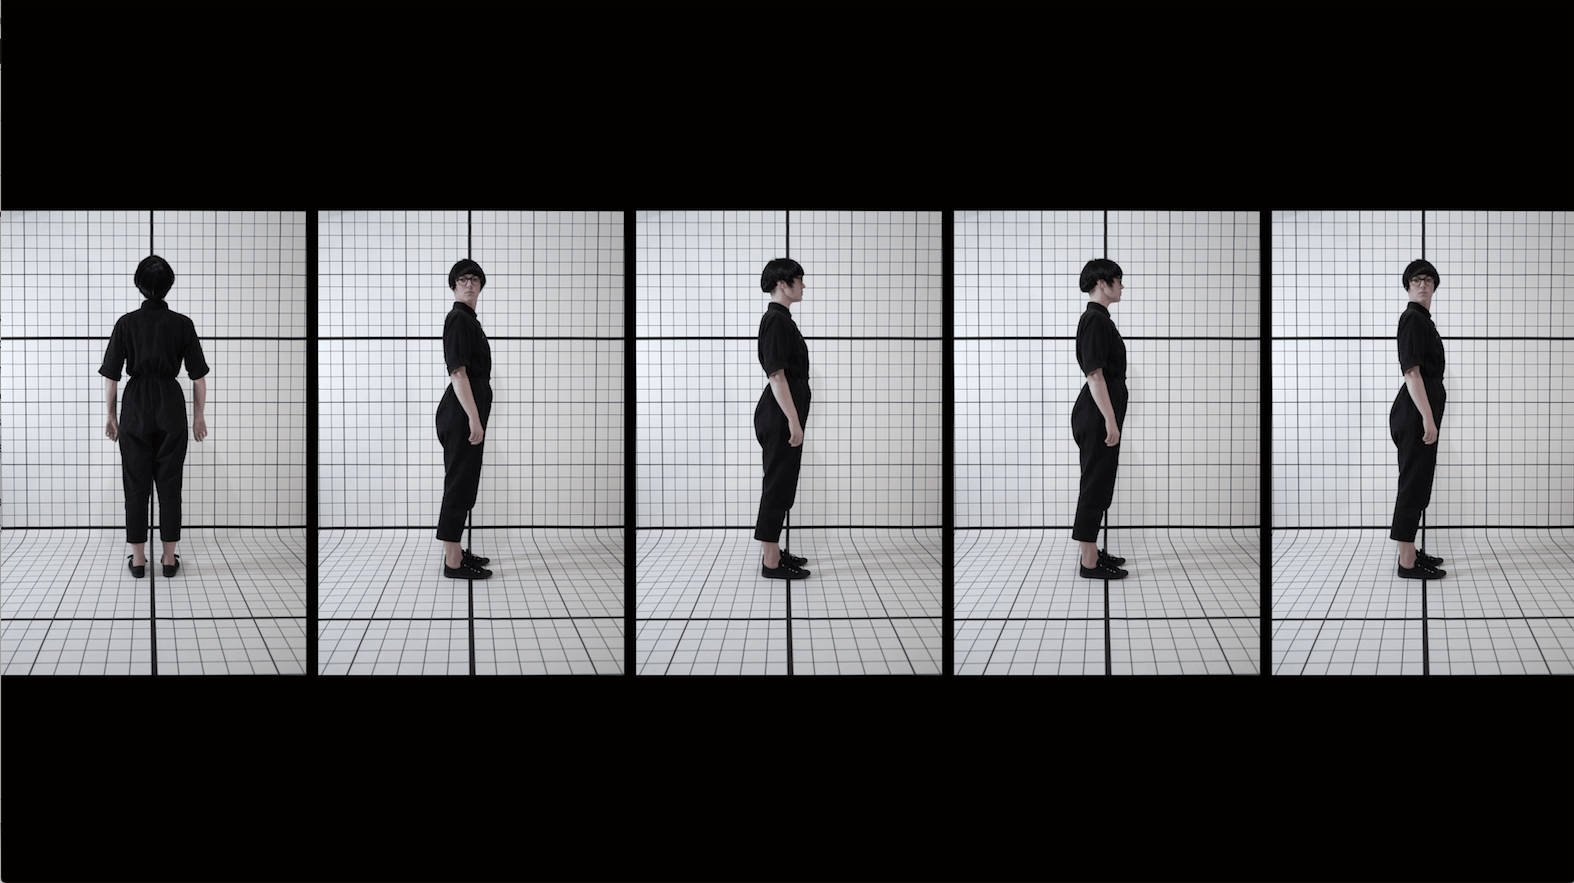 Sara Morawetz, 'An Index of Arbitrary Measures', 2019, single channel video, 24:28 mins, edition of 3 + 1AP